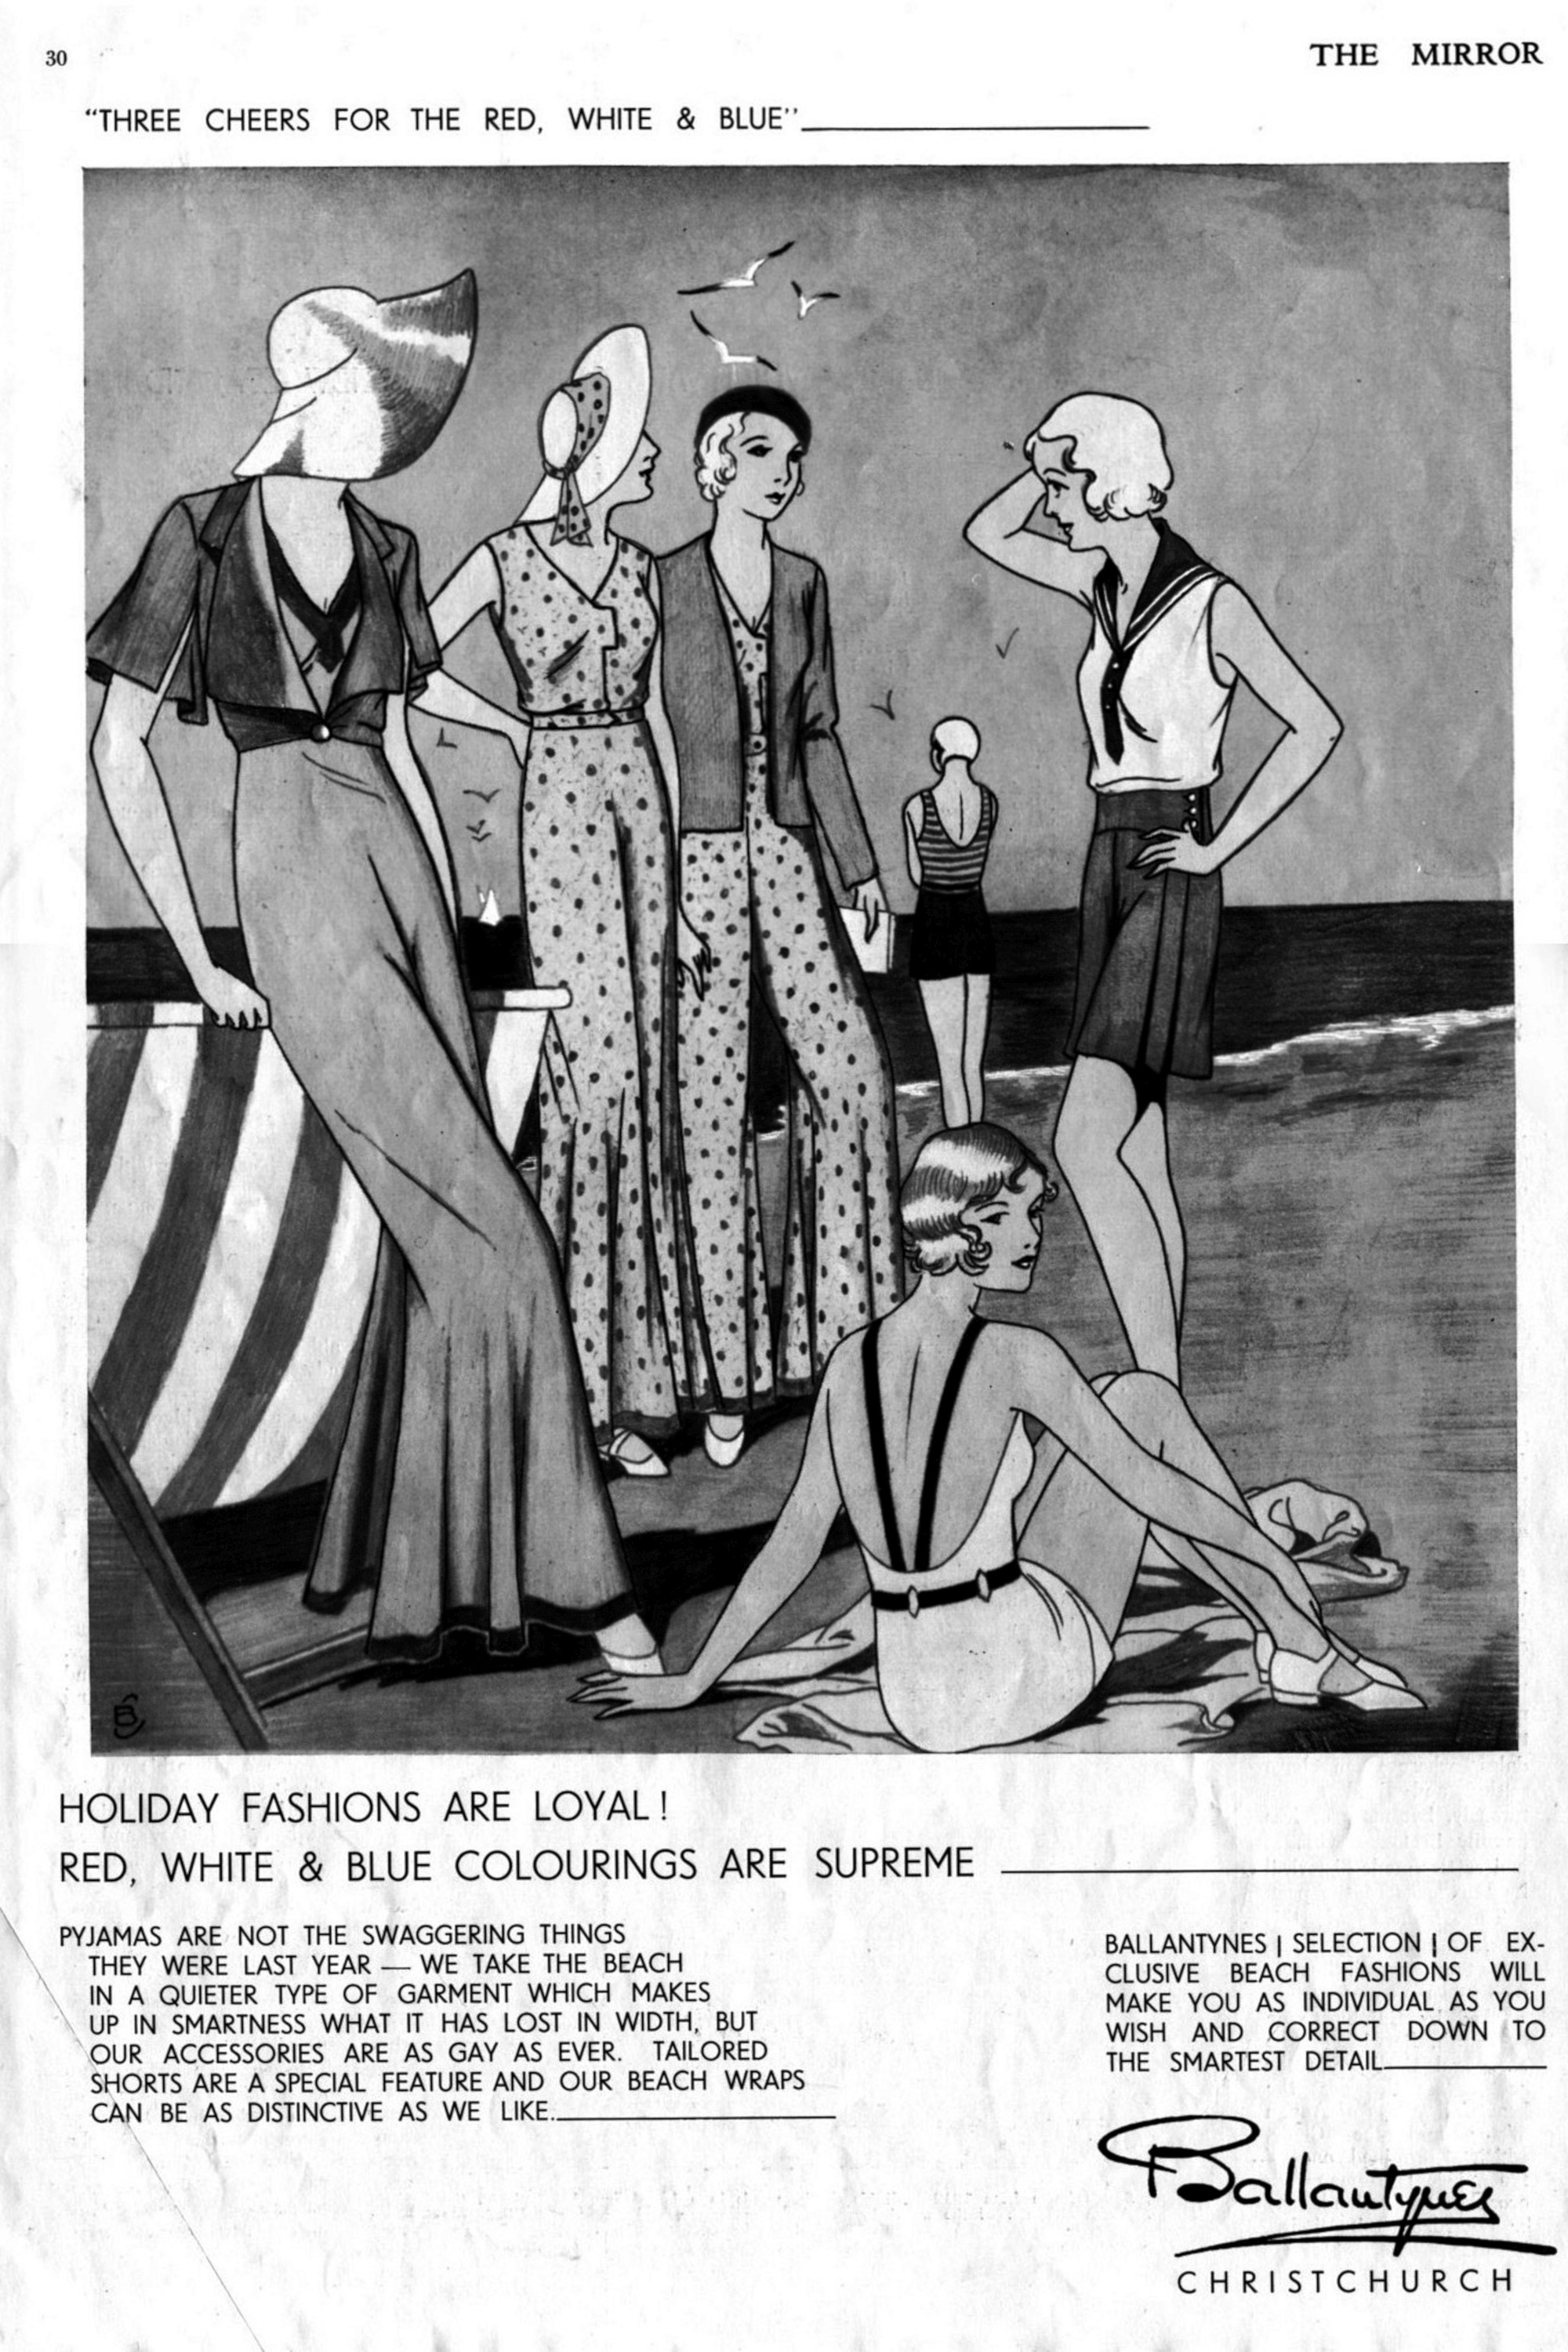 Drawn advertisement illustrative Fashion SEARCH advertising drawing to